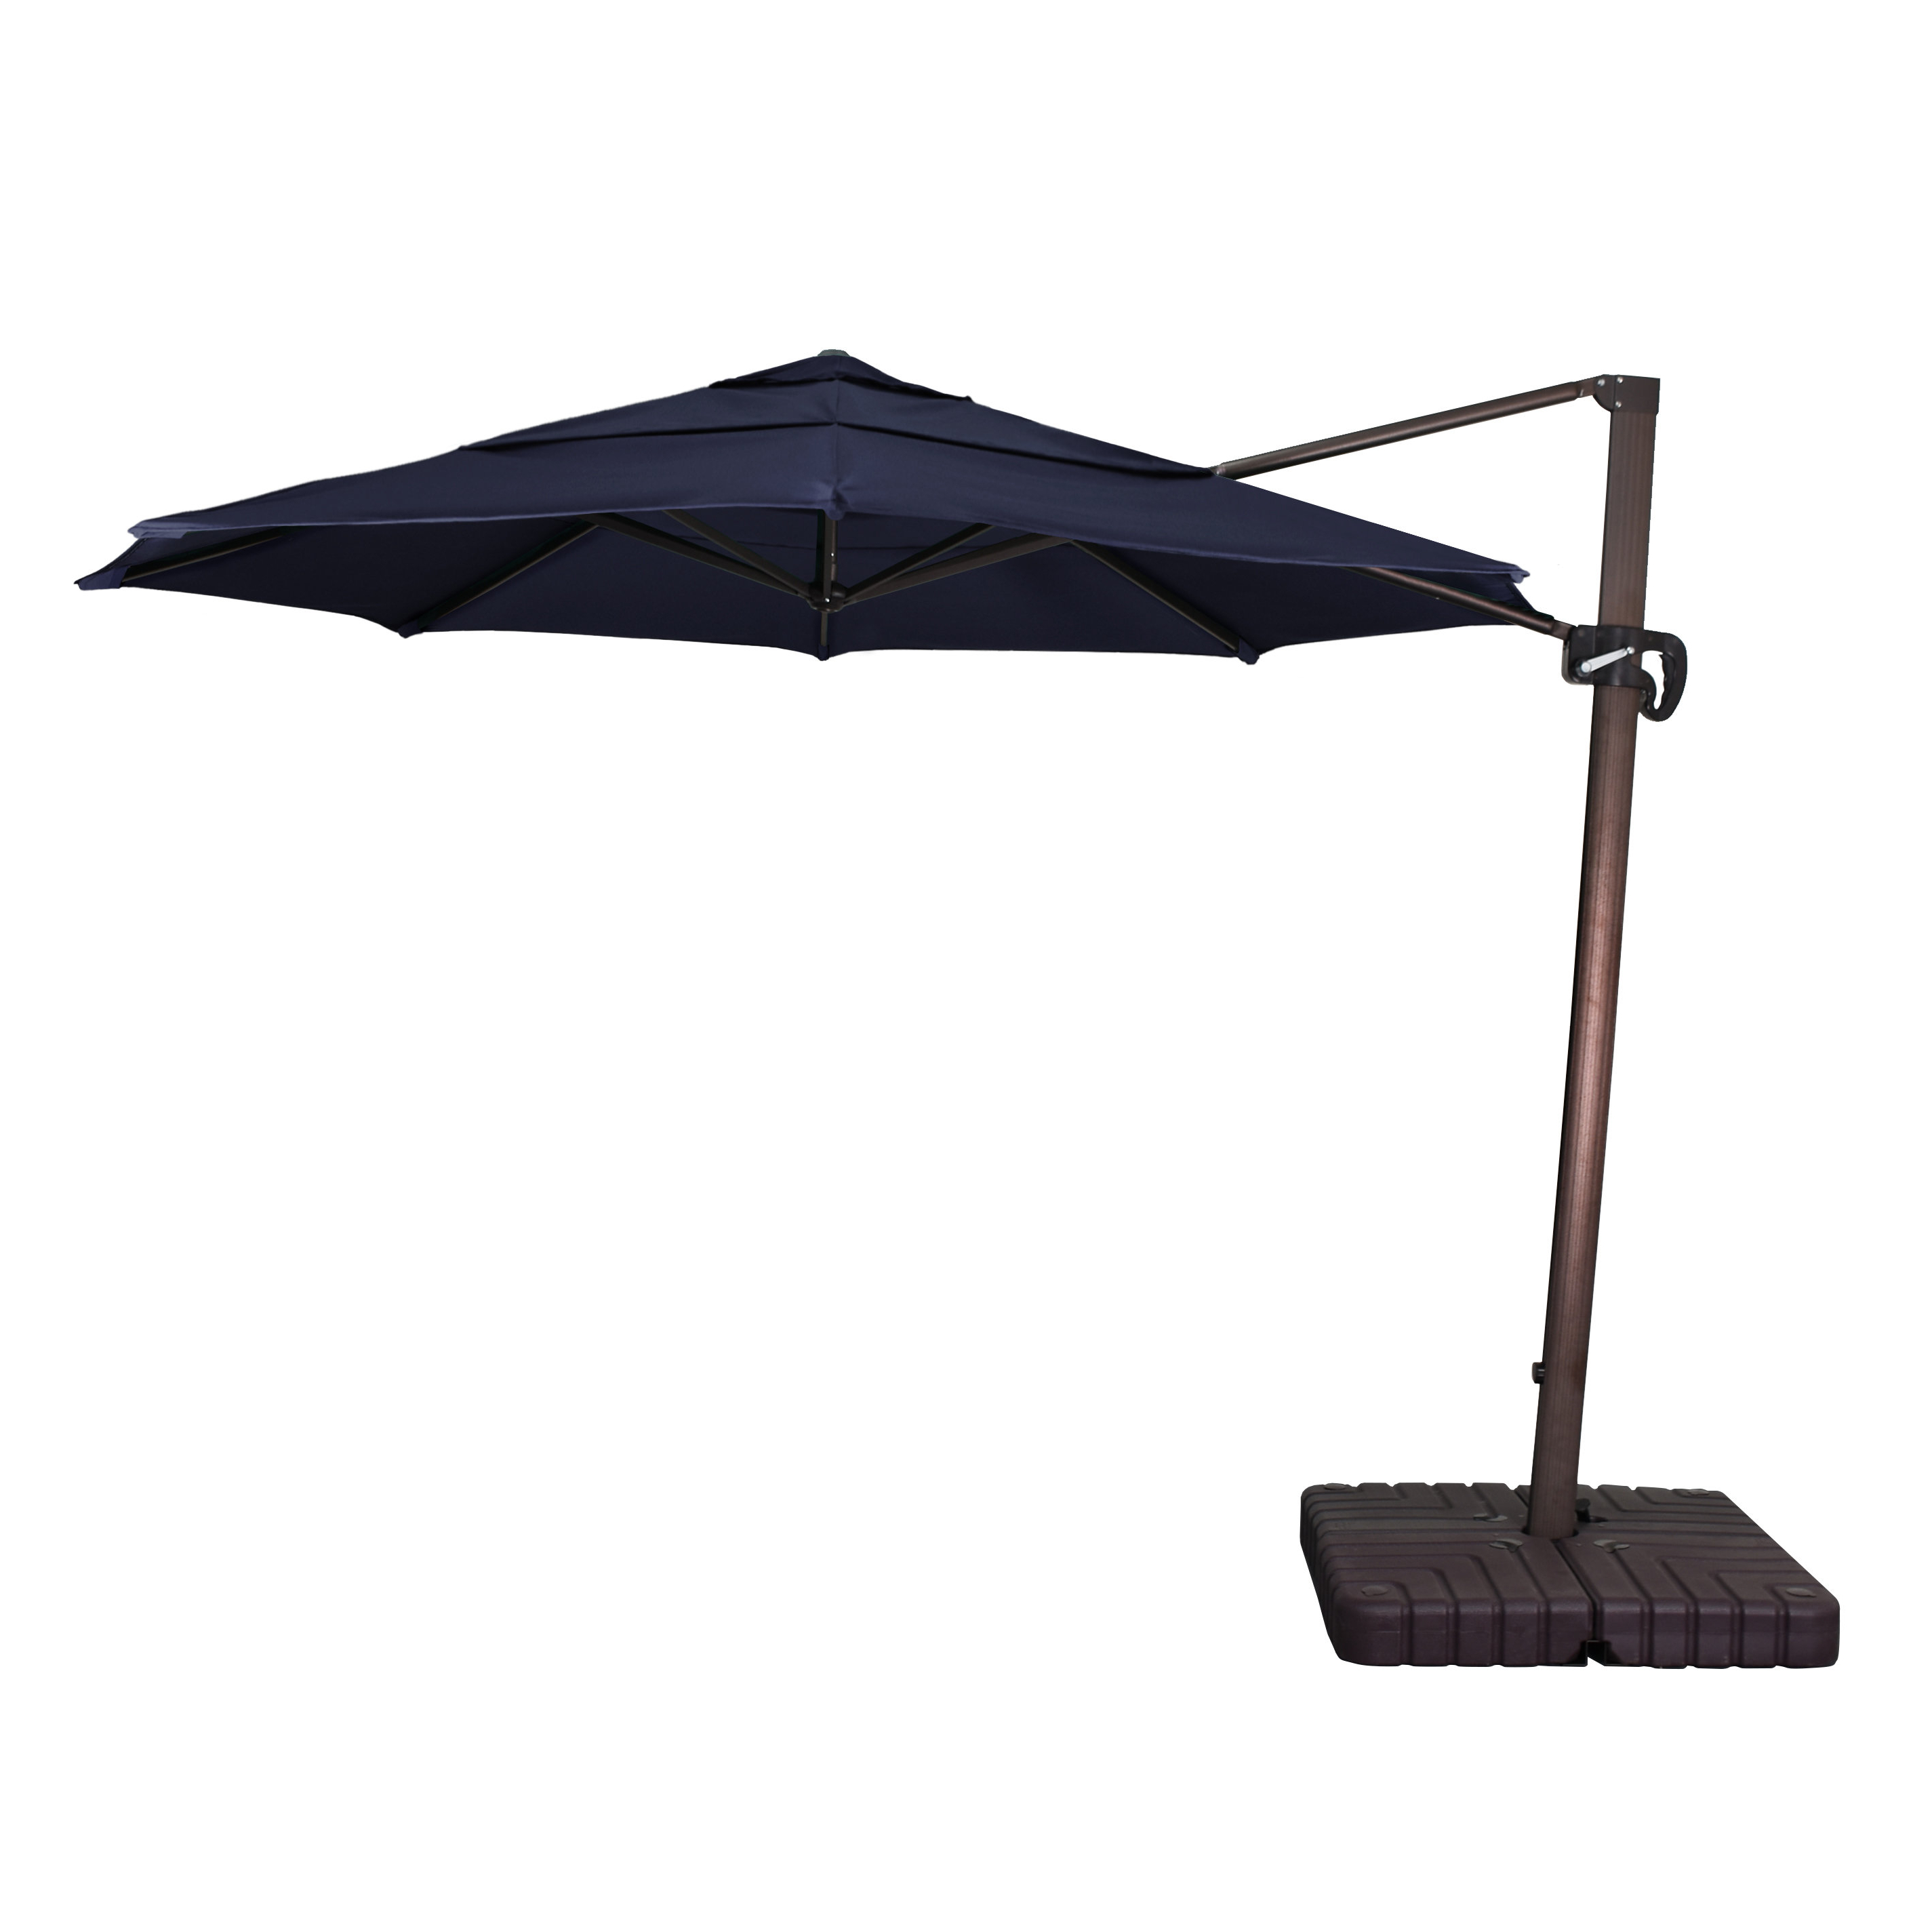 Well Known Gribble 3Cantilever Umbrellas Pertaining To Carlisle 11' Cantilever Sunbrella Umbrella (View 3 of 20)